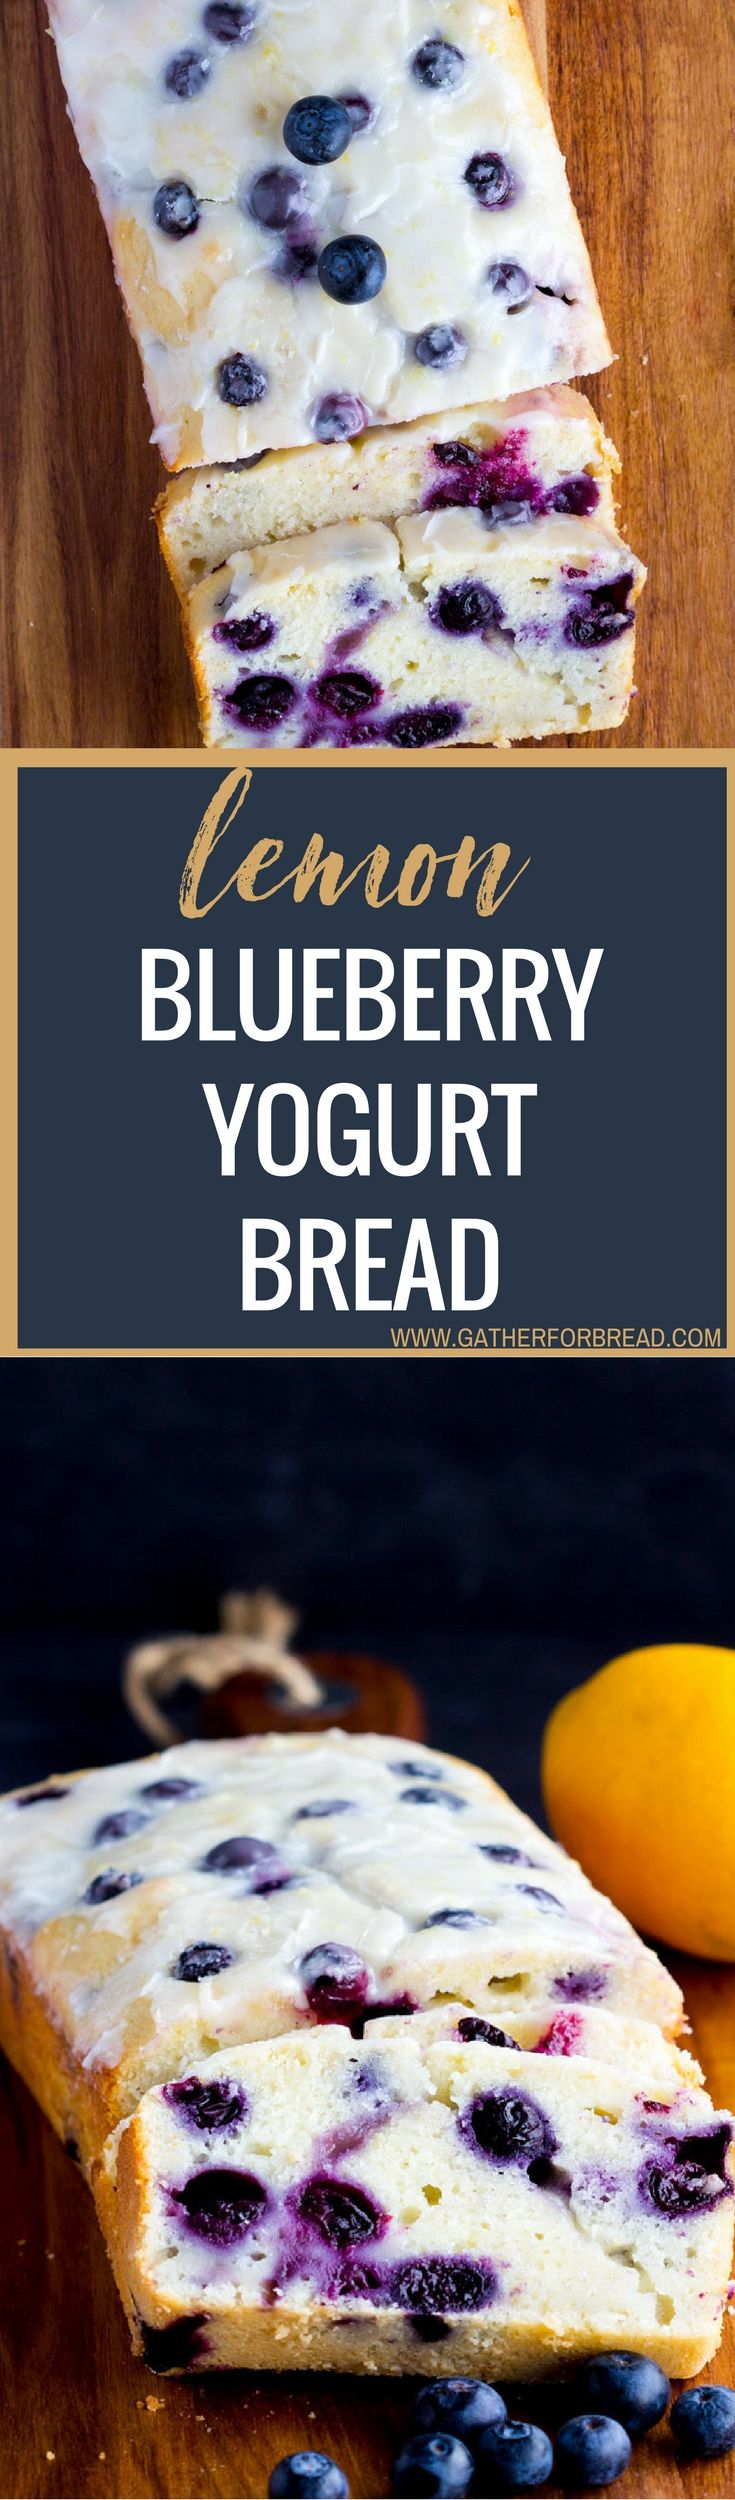 Lemon Blueberry Yogurt Bread - Homemade moist lemon bread with fresh blueberries, topped with a lemon glaze. Made with Greek yogurt as a healthy choice. Great quick bread to serve in the summer.(Summer Bake Greek Yogurt)